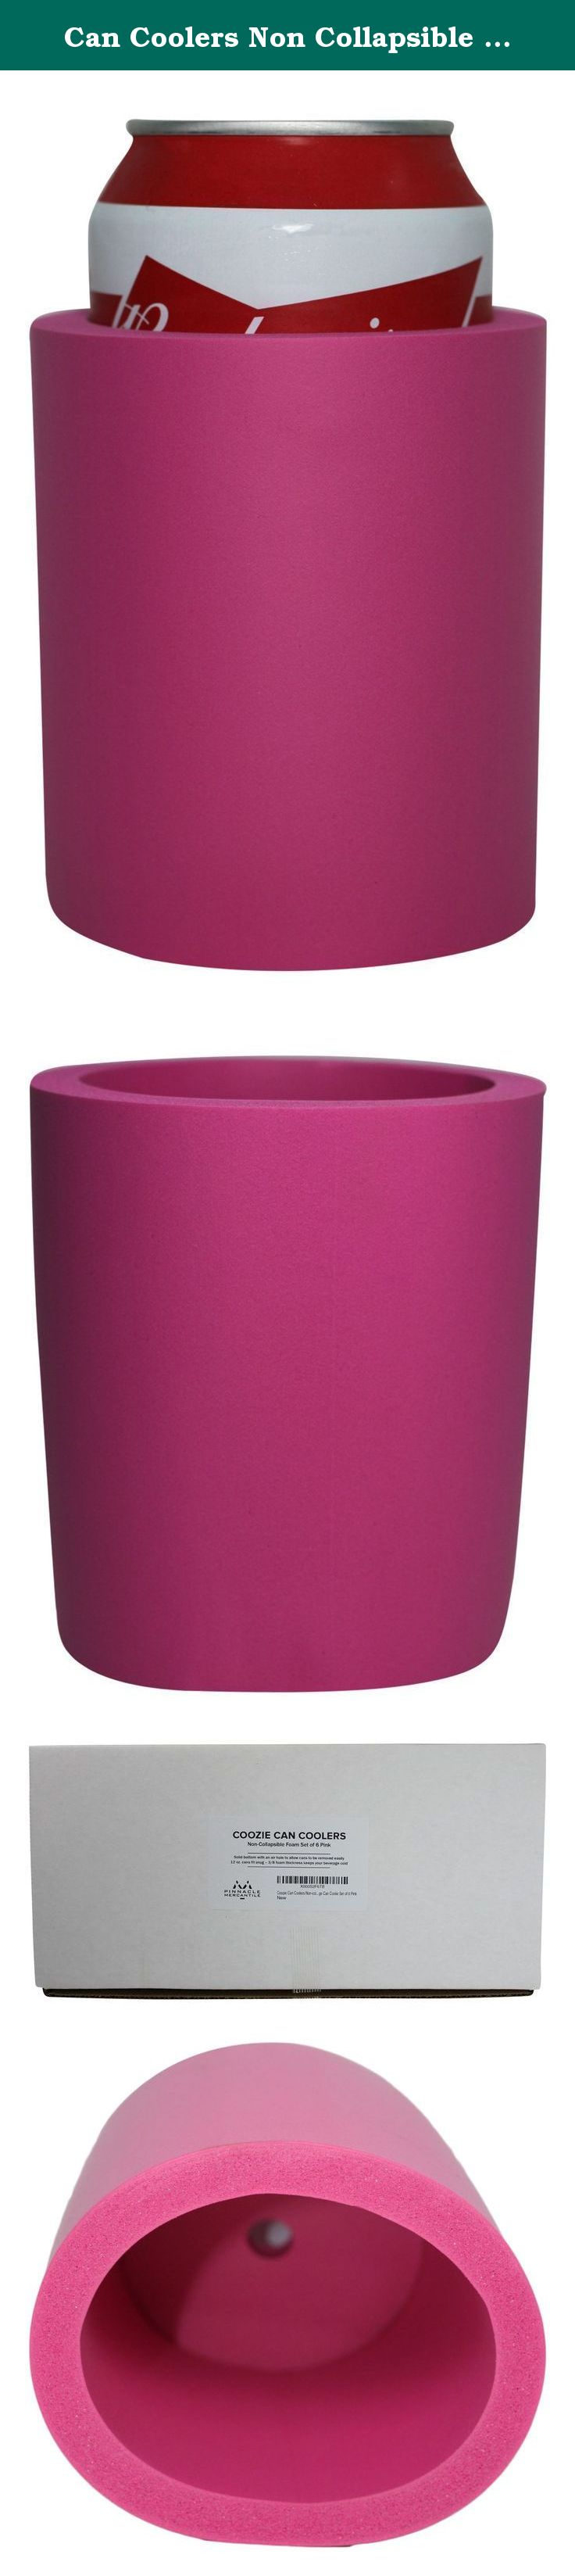 Can Coolers Non Collapsible Foam Beverage Can Insulators